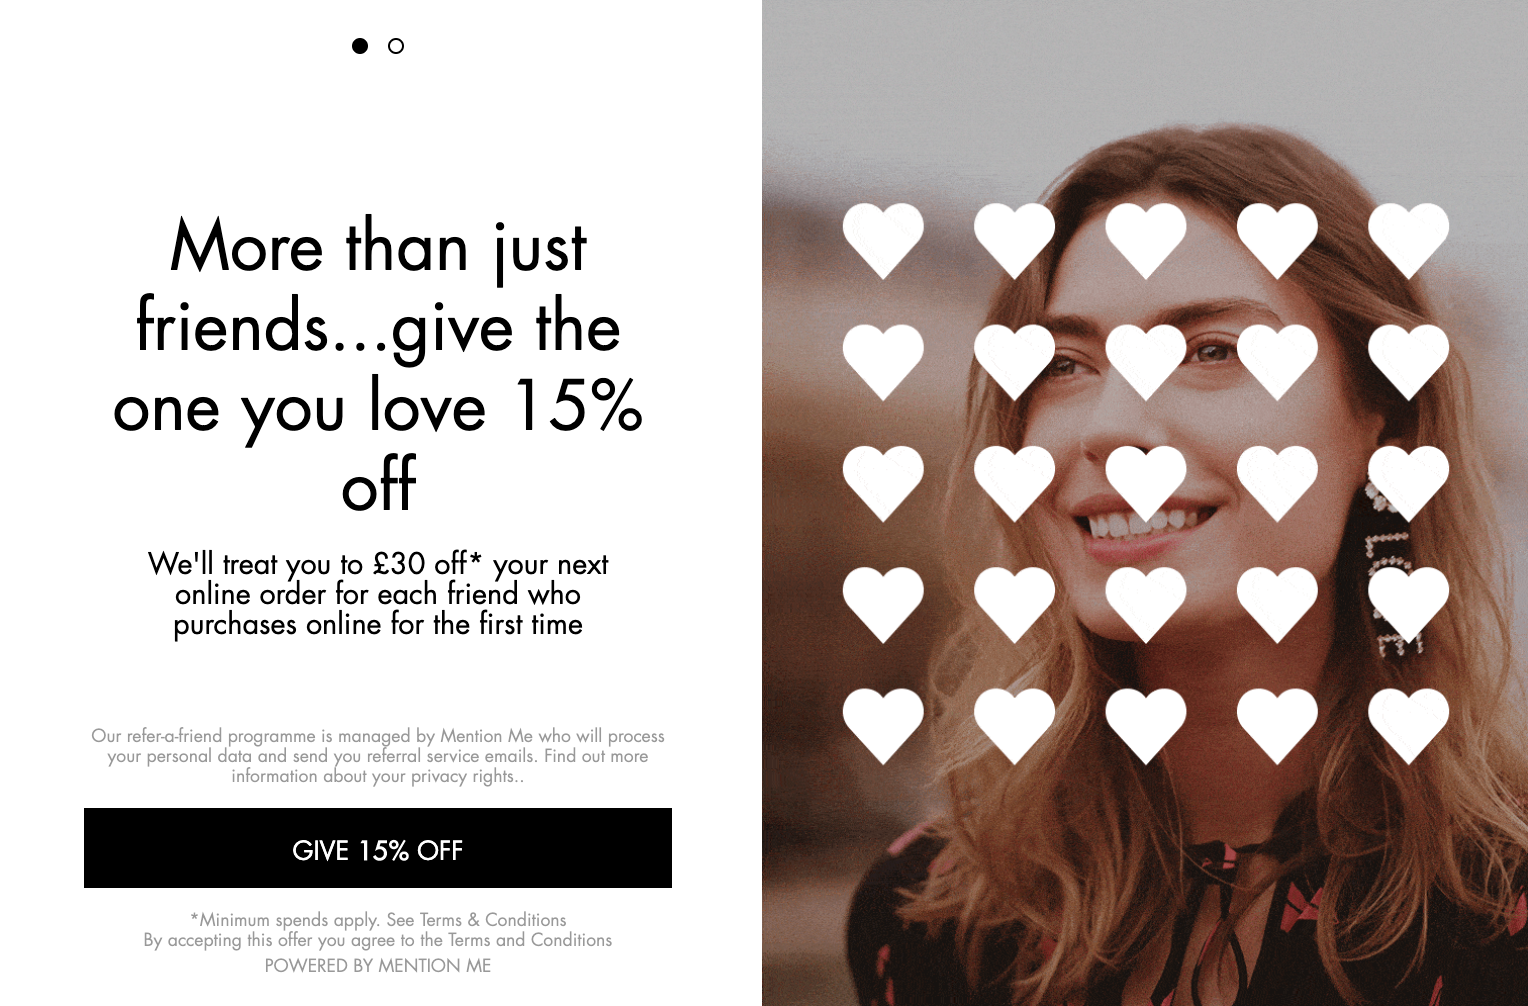 Harvey Nichols refer a friend Valentine's campaign